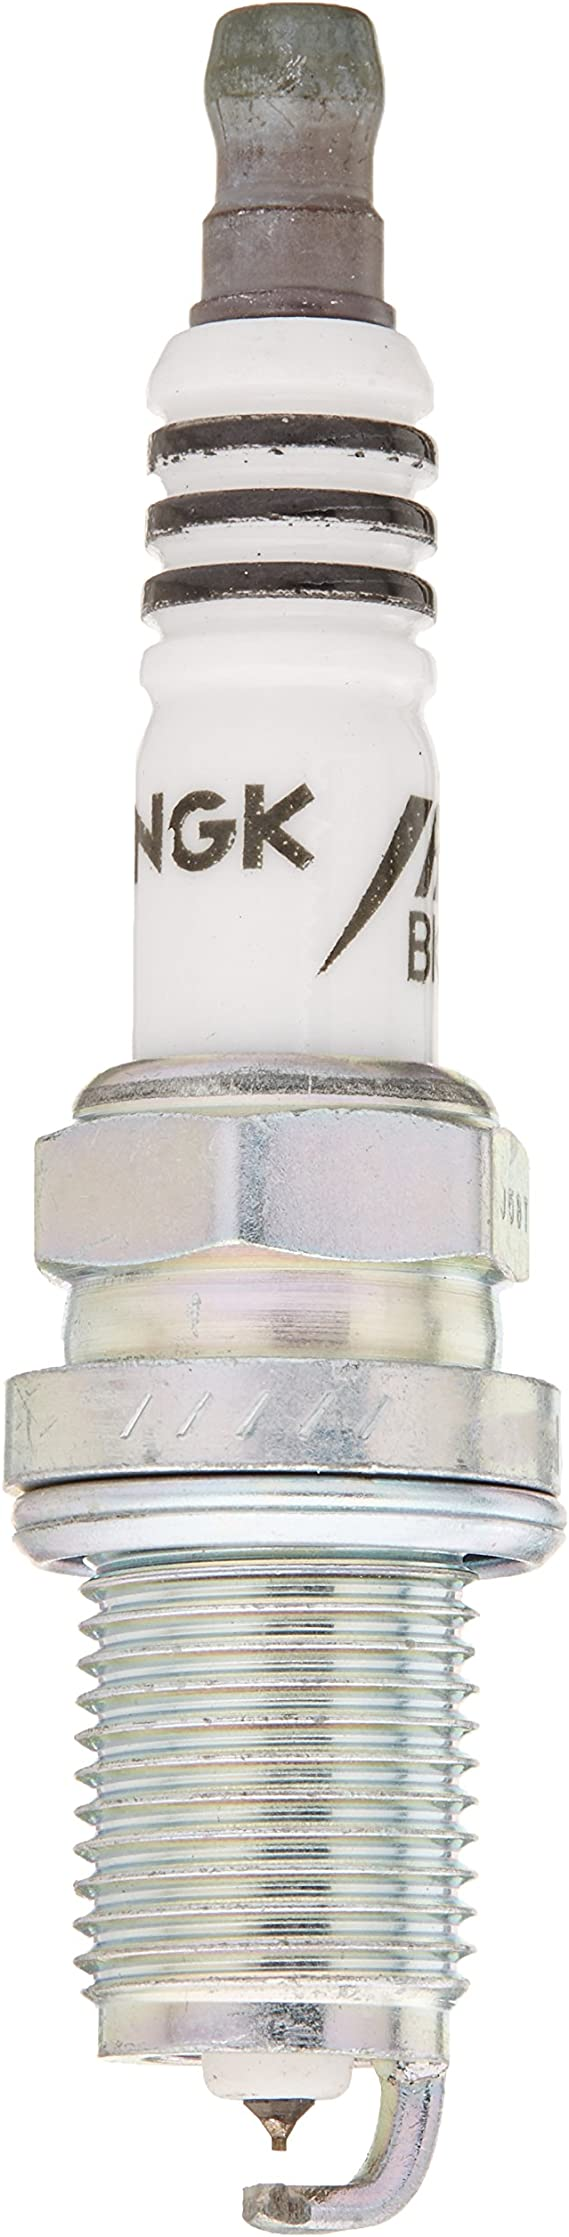 6 New NGK Iridium IX Spark Plugs BKR5EIX-11 # 5464